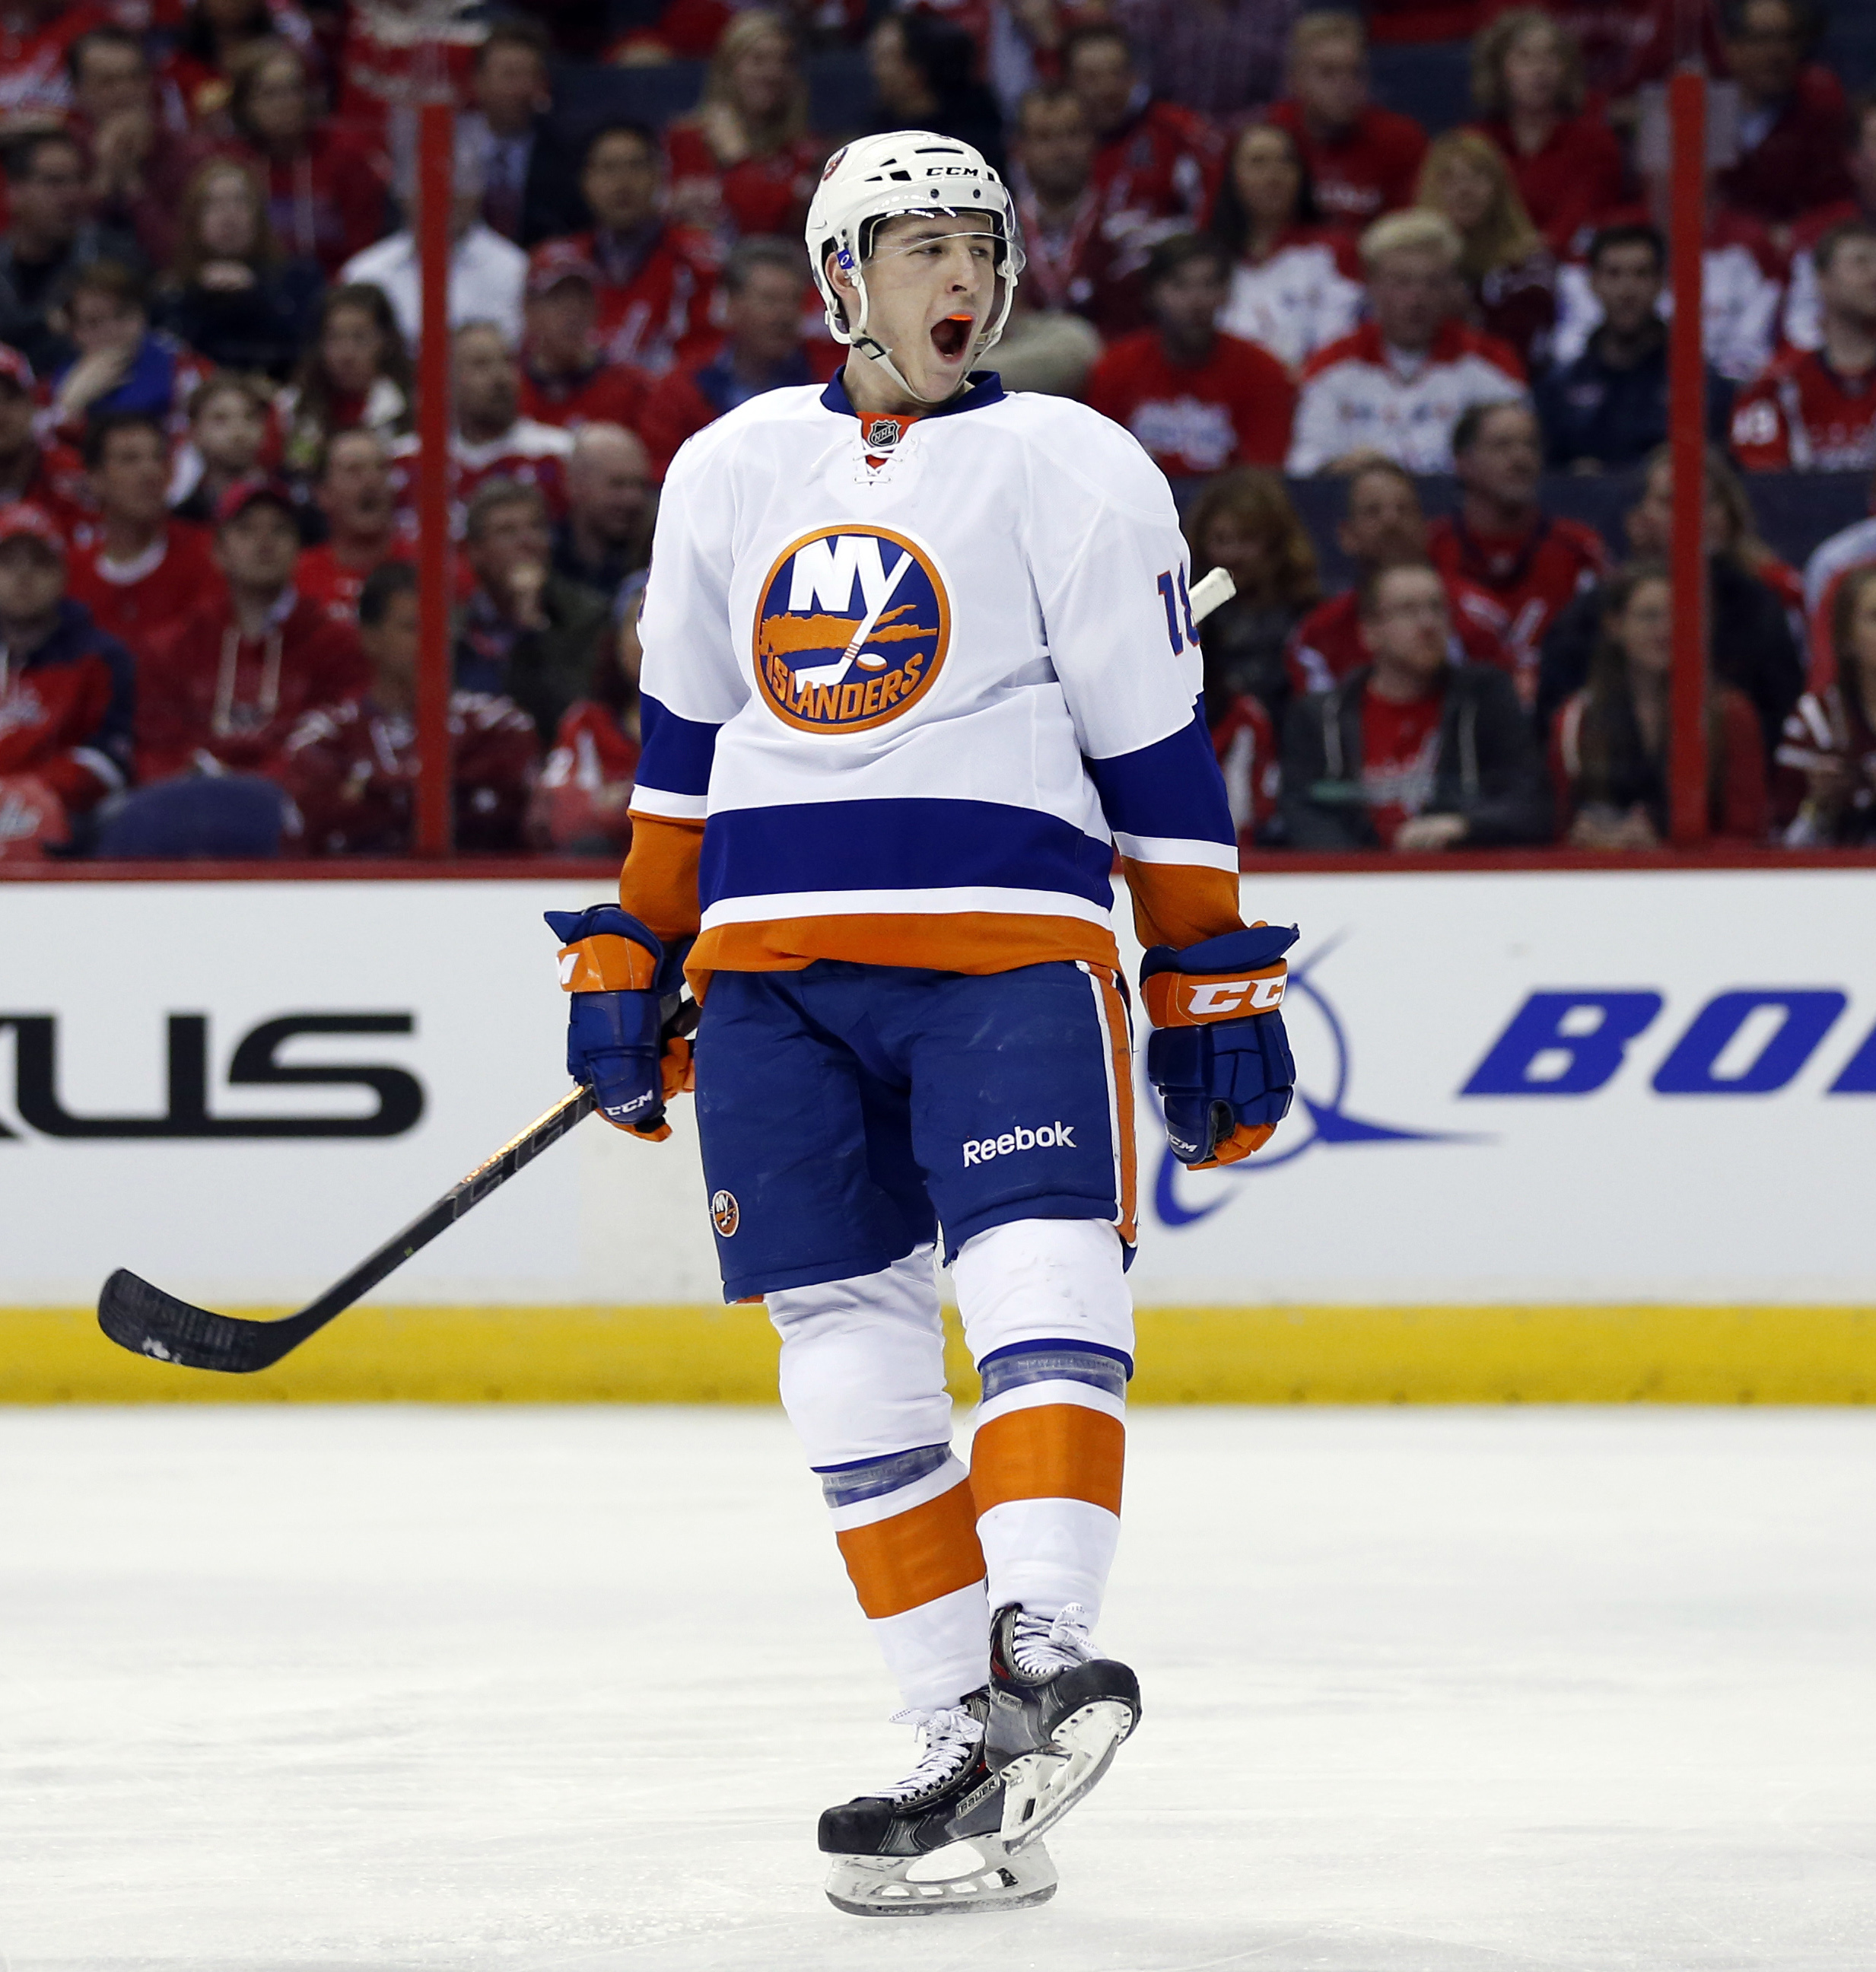 New York Islanders center Ryan Strome (18) celebrates his goal against the Washington Capitals during the second period of Game 1 of a first-round NHL hockey Stanley Cup playoff series, Wednesday, April 15, 2015, in Washington. (AP Photo/Alex Brandon)